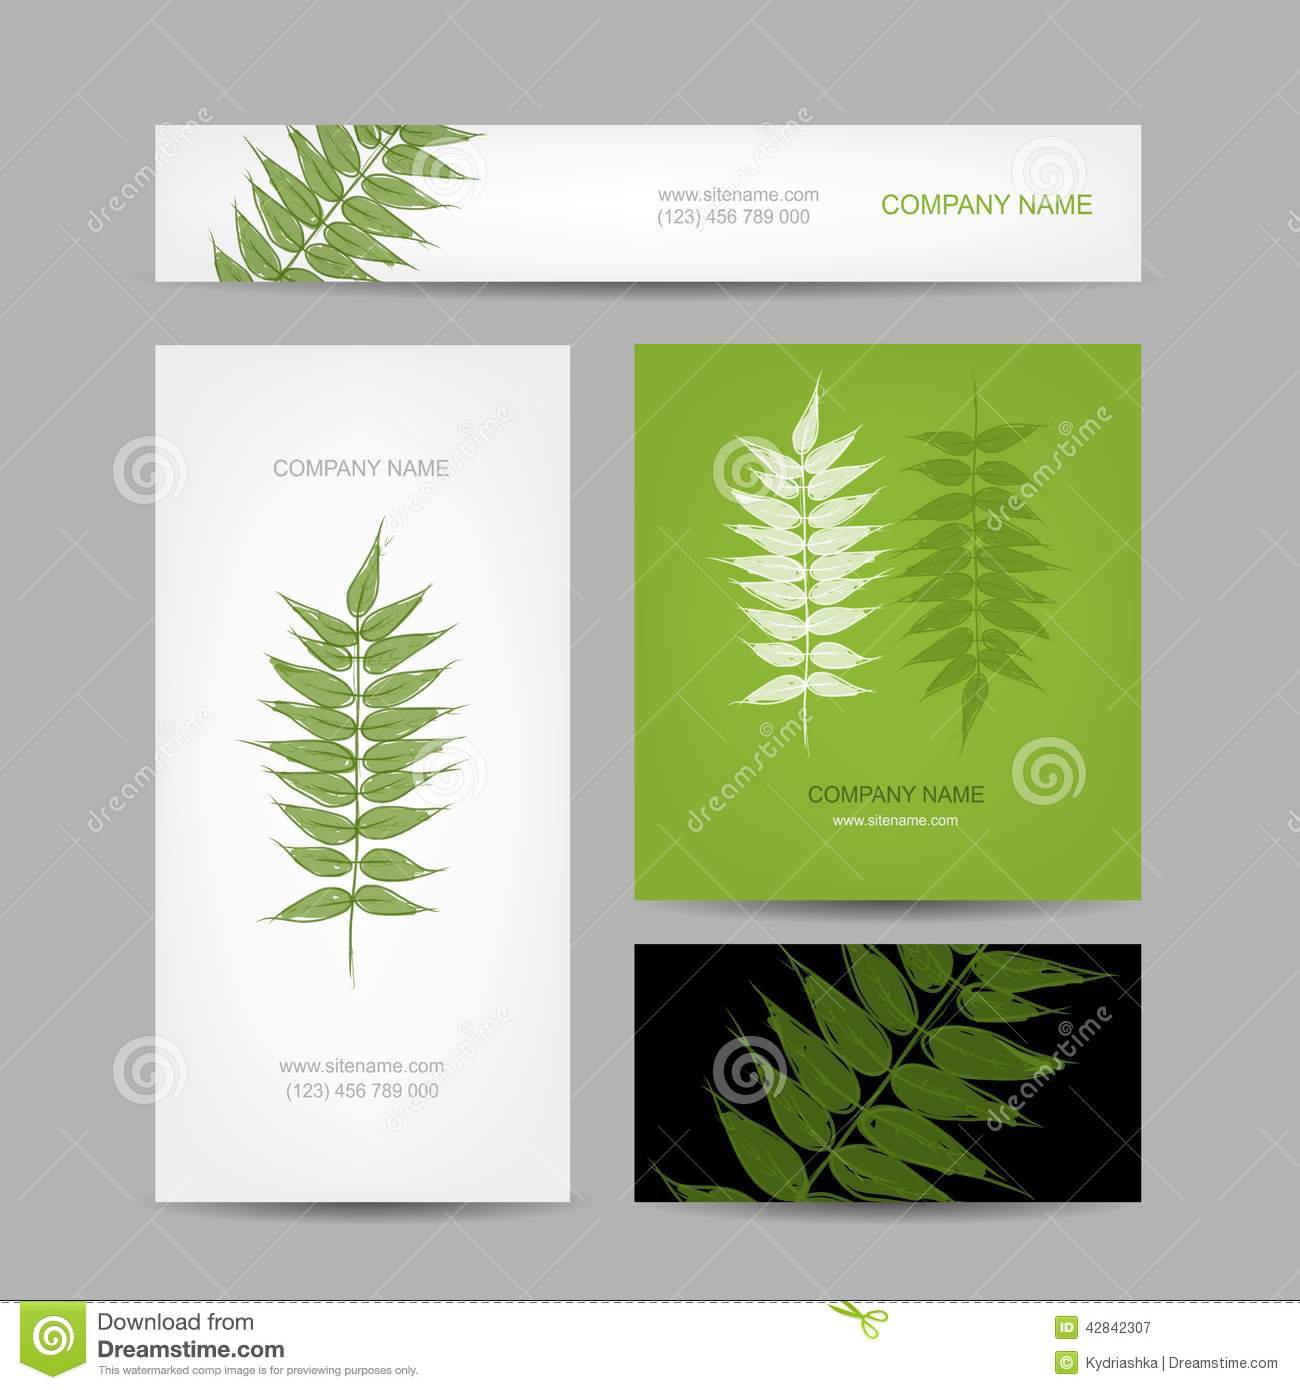 Green leaf business cards choice image card design and card template business cards collection green leaf design stock vector image royalty free vector download business cards collection magicingreecefo Choice Image